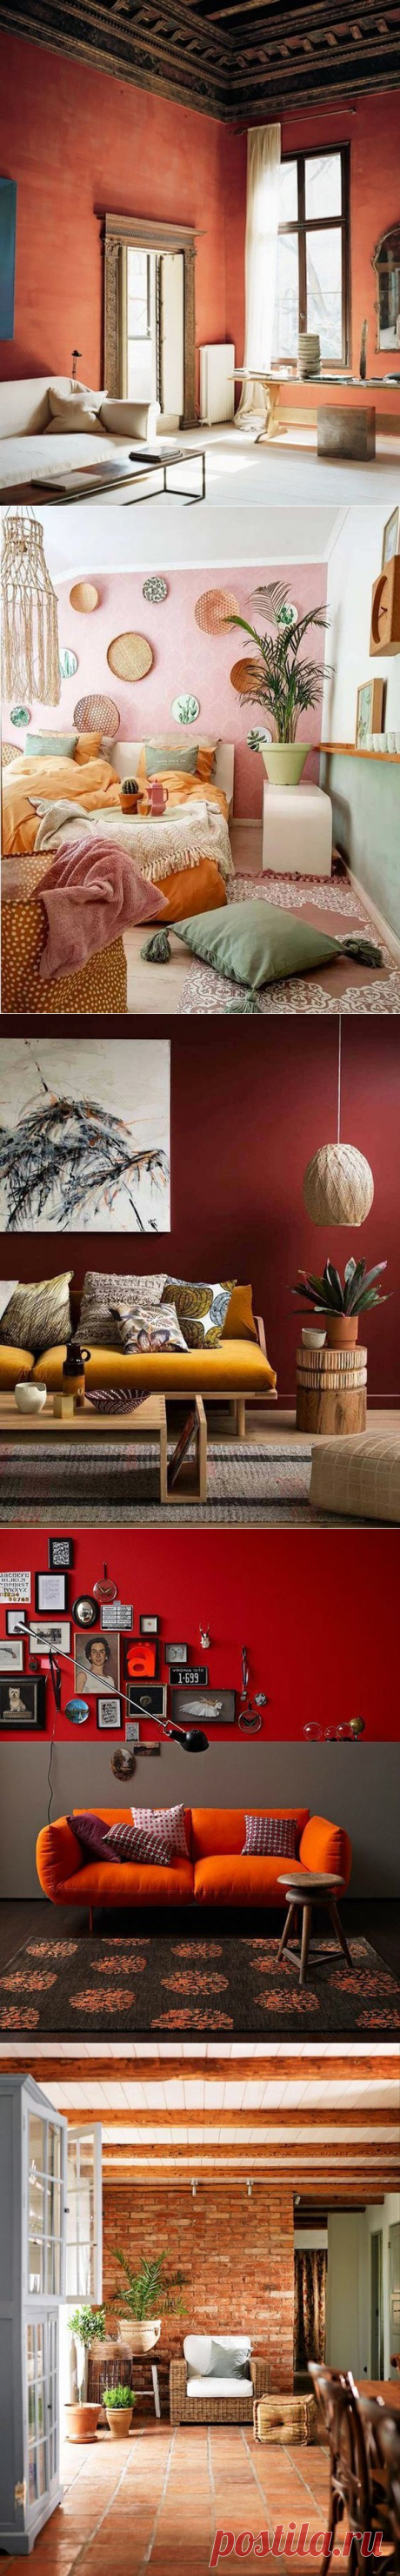 Ideas to paint and decorate magically with terracotta color | My desired home